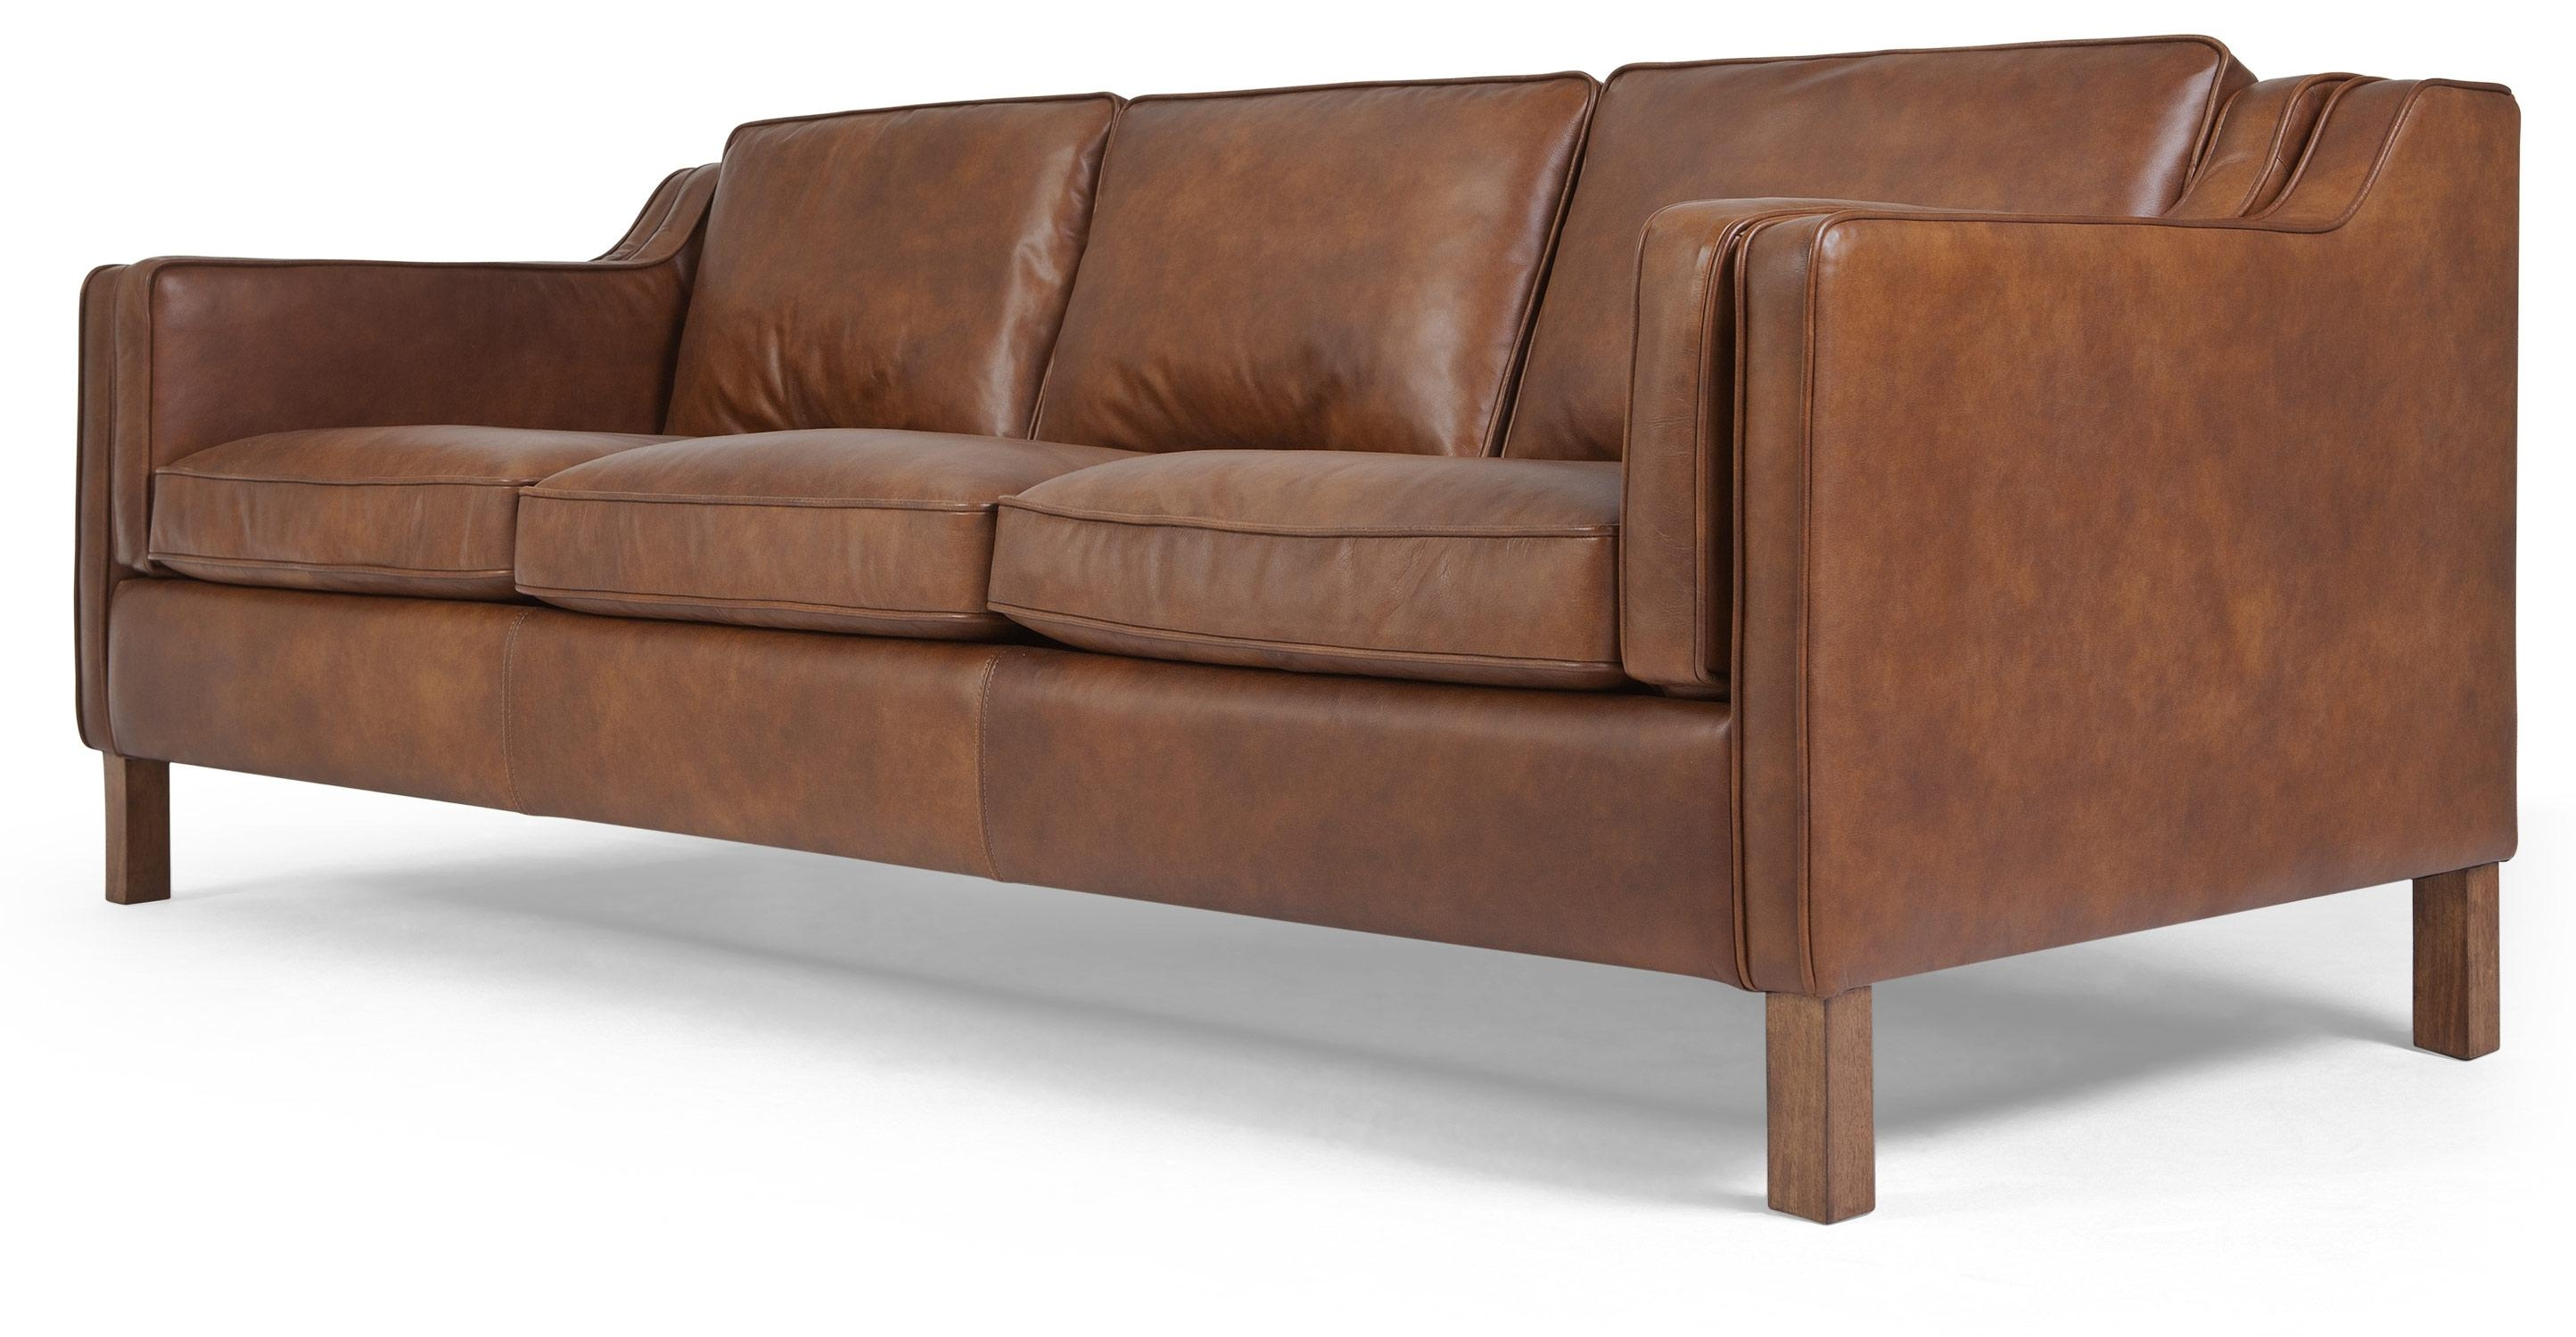 Sofas Center : 45 Fascinating Mid Century Modern Leather Sofa Regarding Mid Century Modern Leather Sectional (Image 12 of 20)